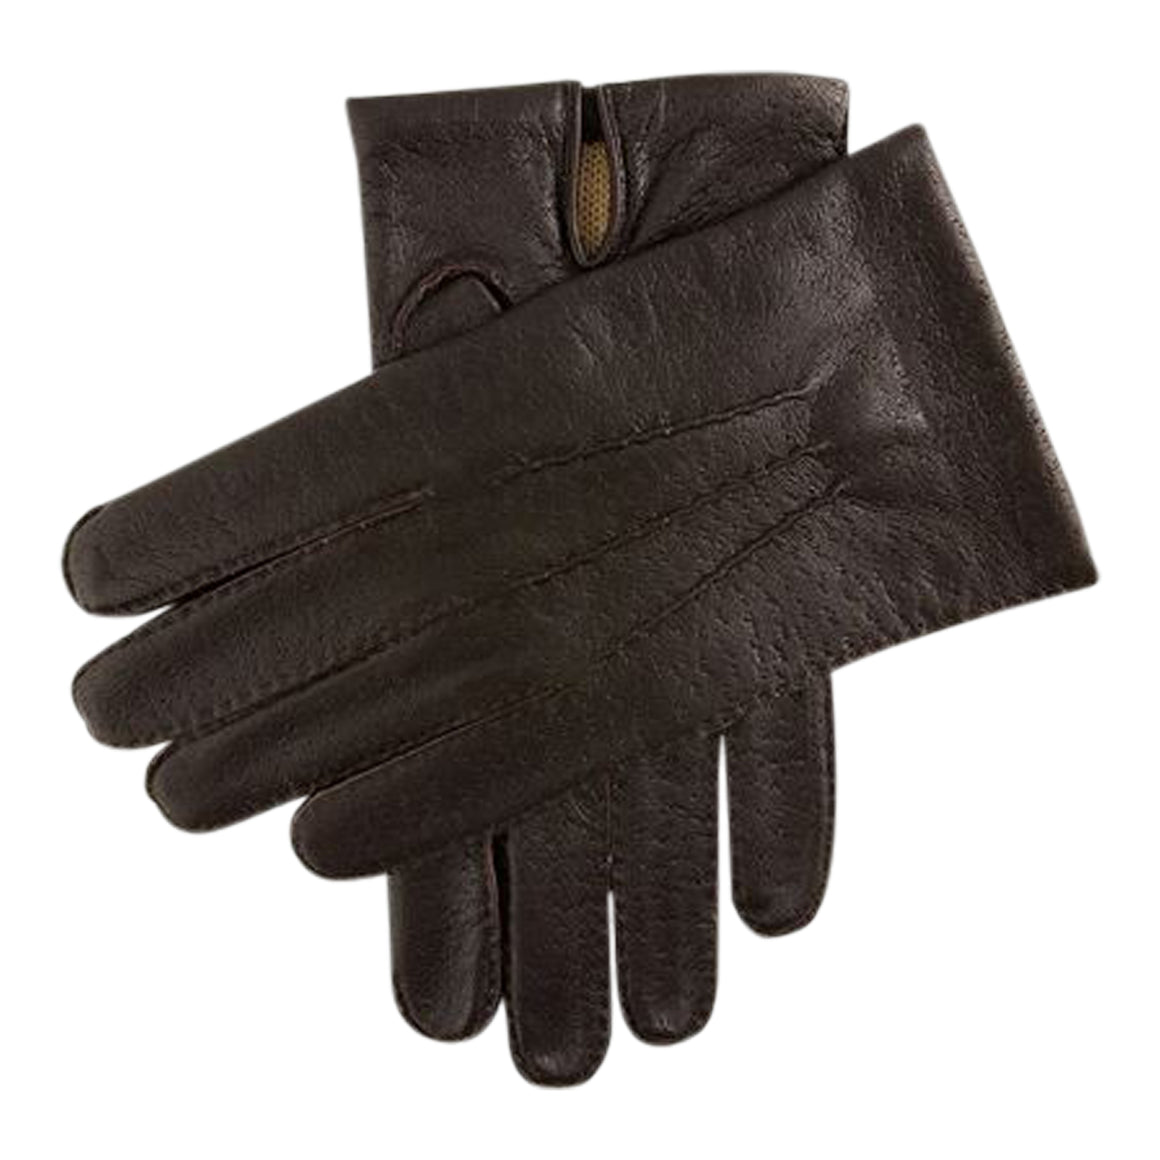 Kent Leather Acrylic Gloves for Men in Brown